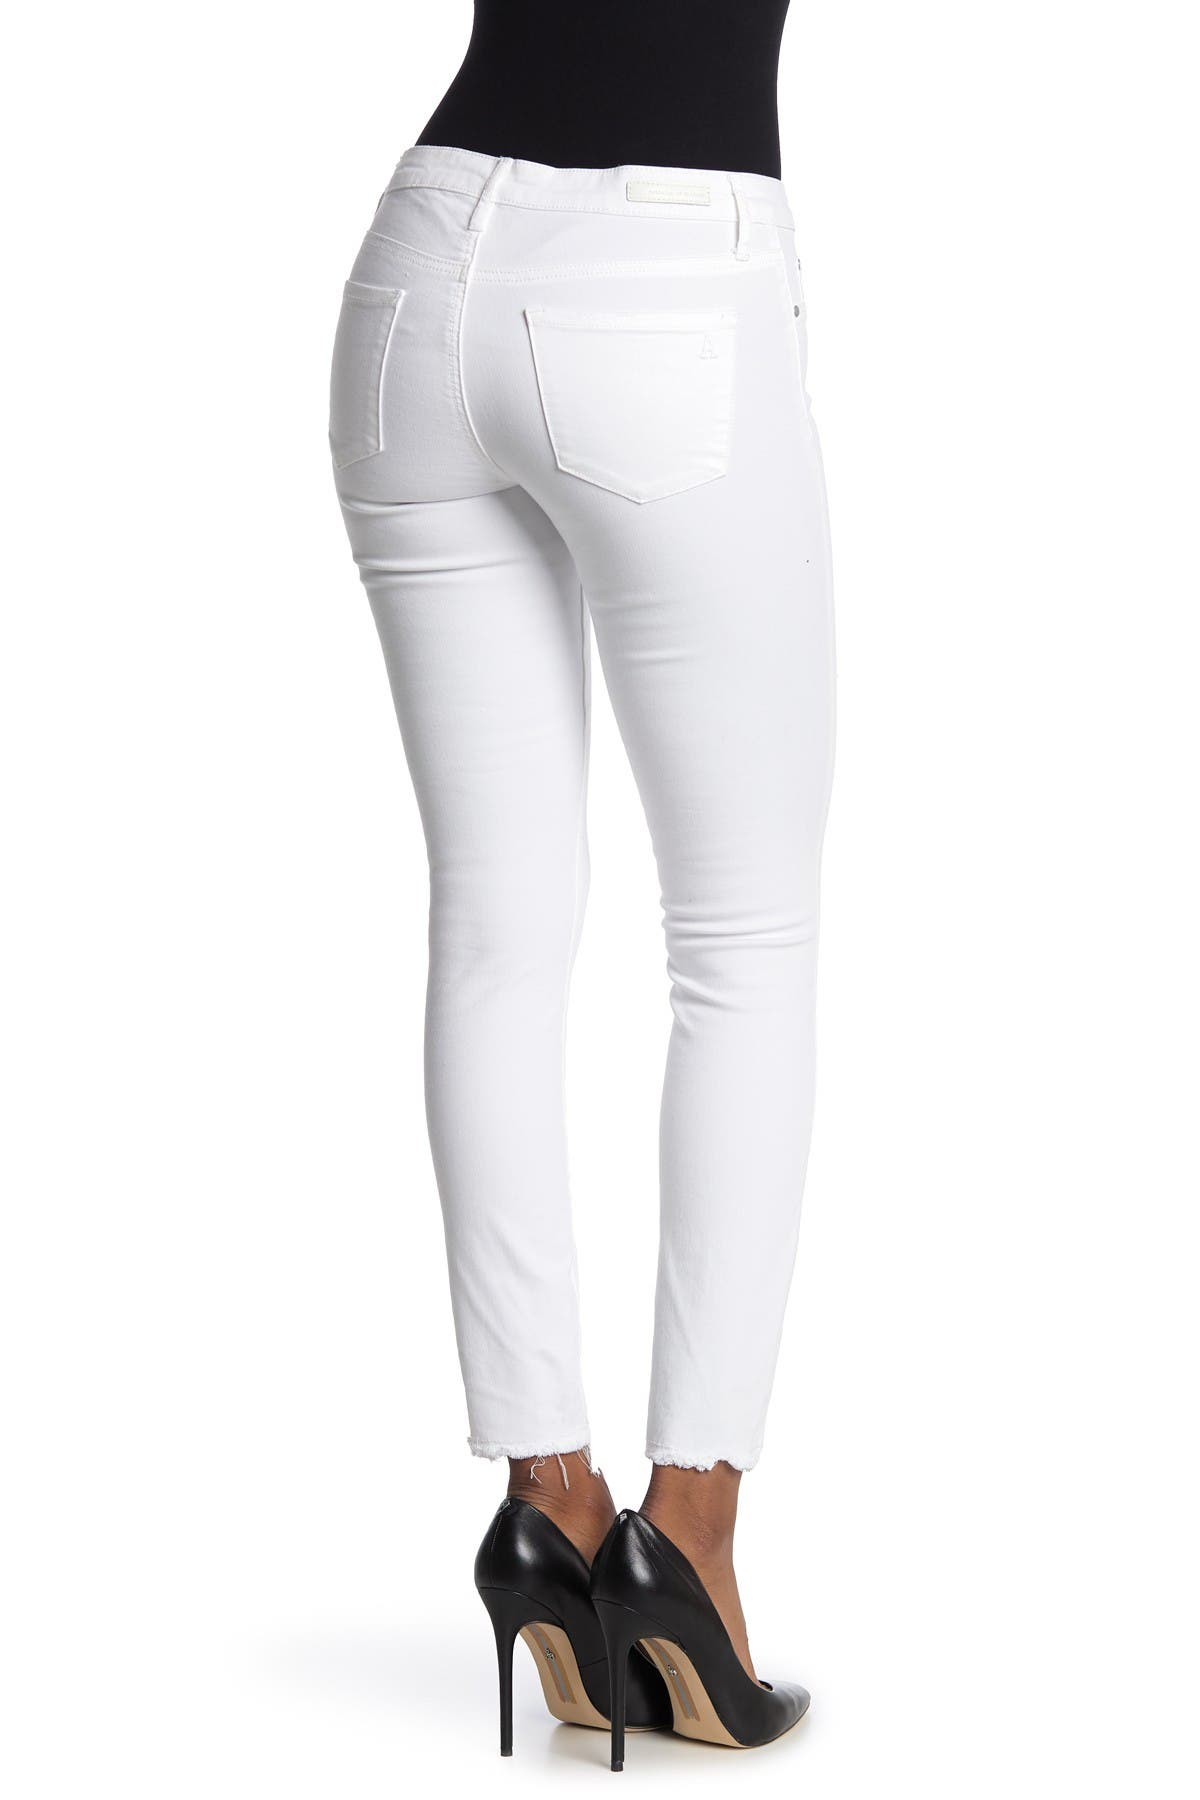 Image of Articles of Society Sarah Distressed Raw Hem Skinny Jeans